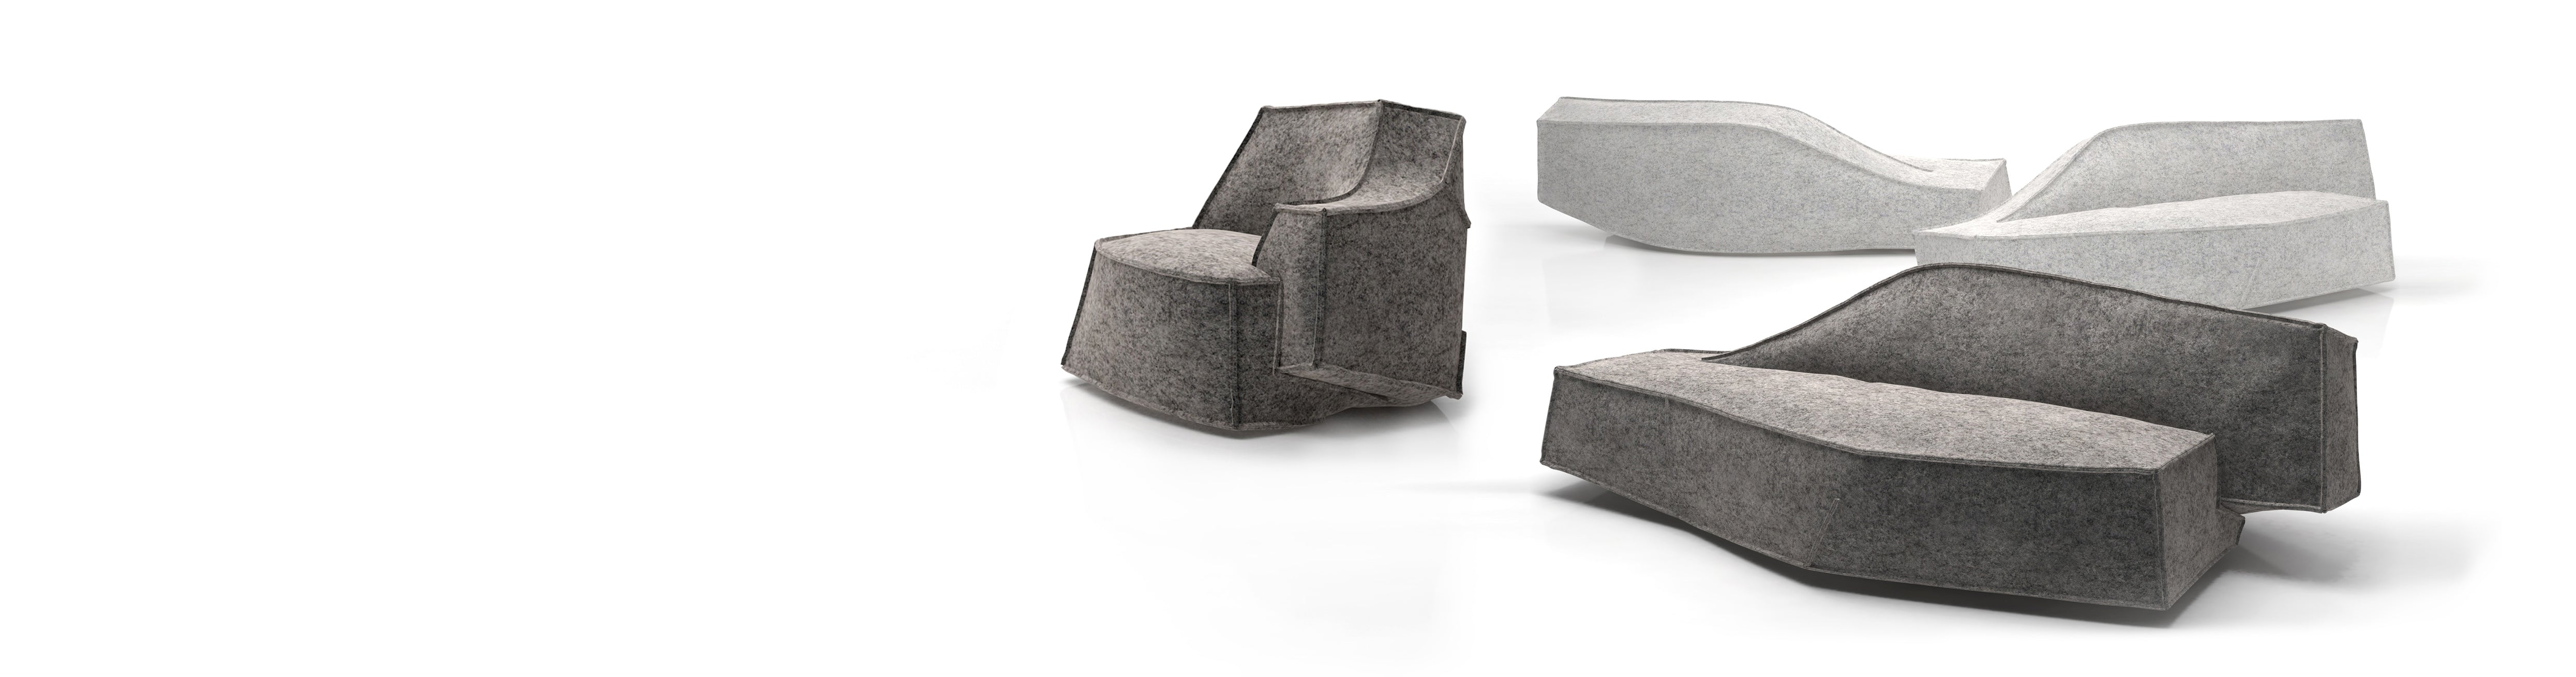 Offecct Airberg Lounge Easy Chair Sofa Seating